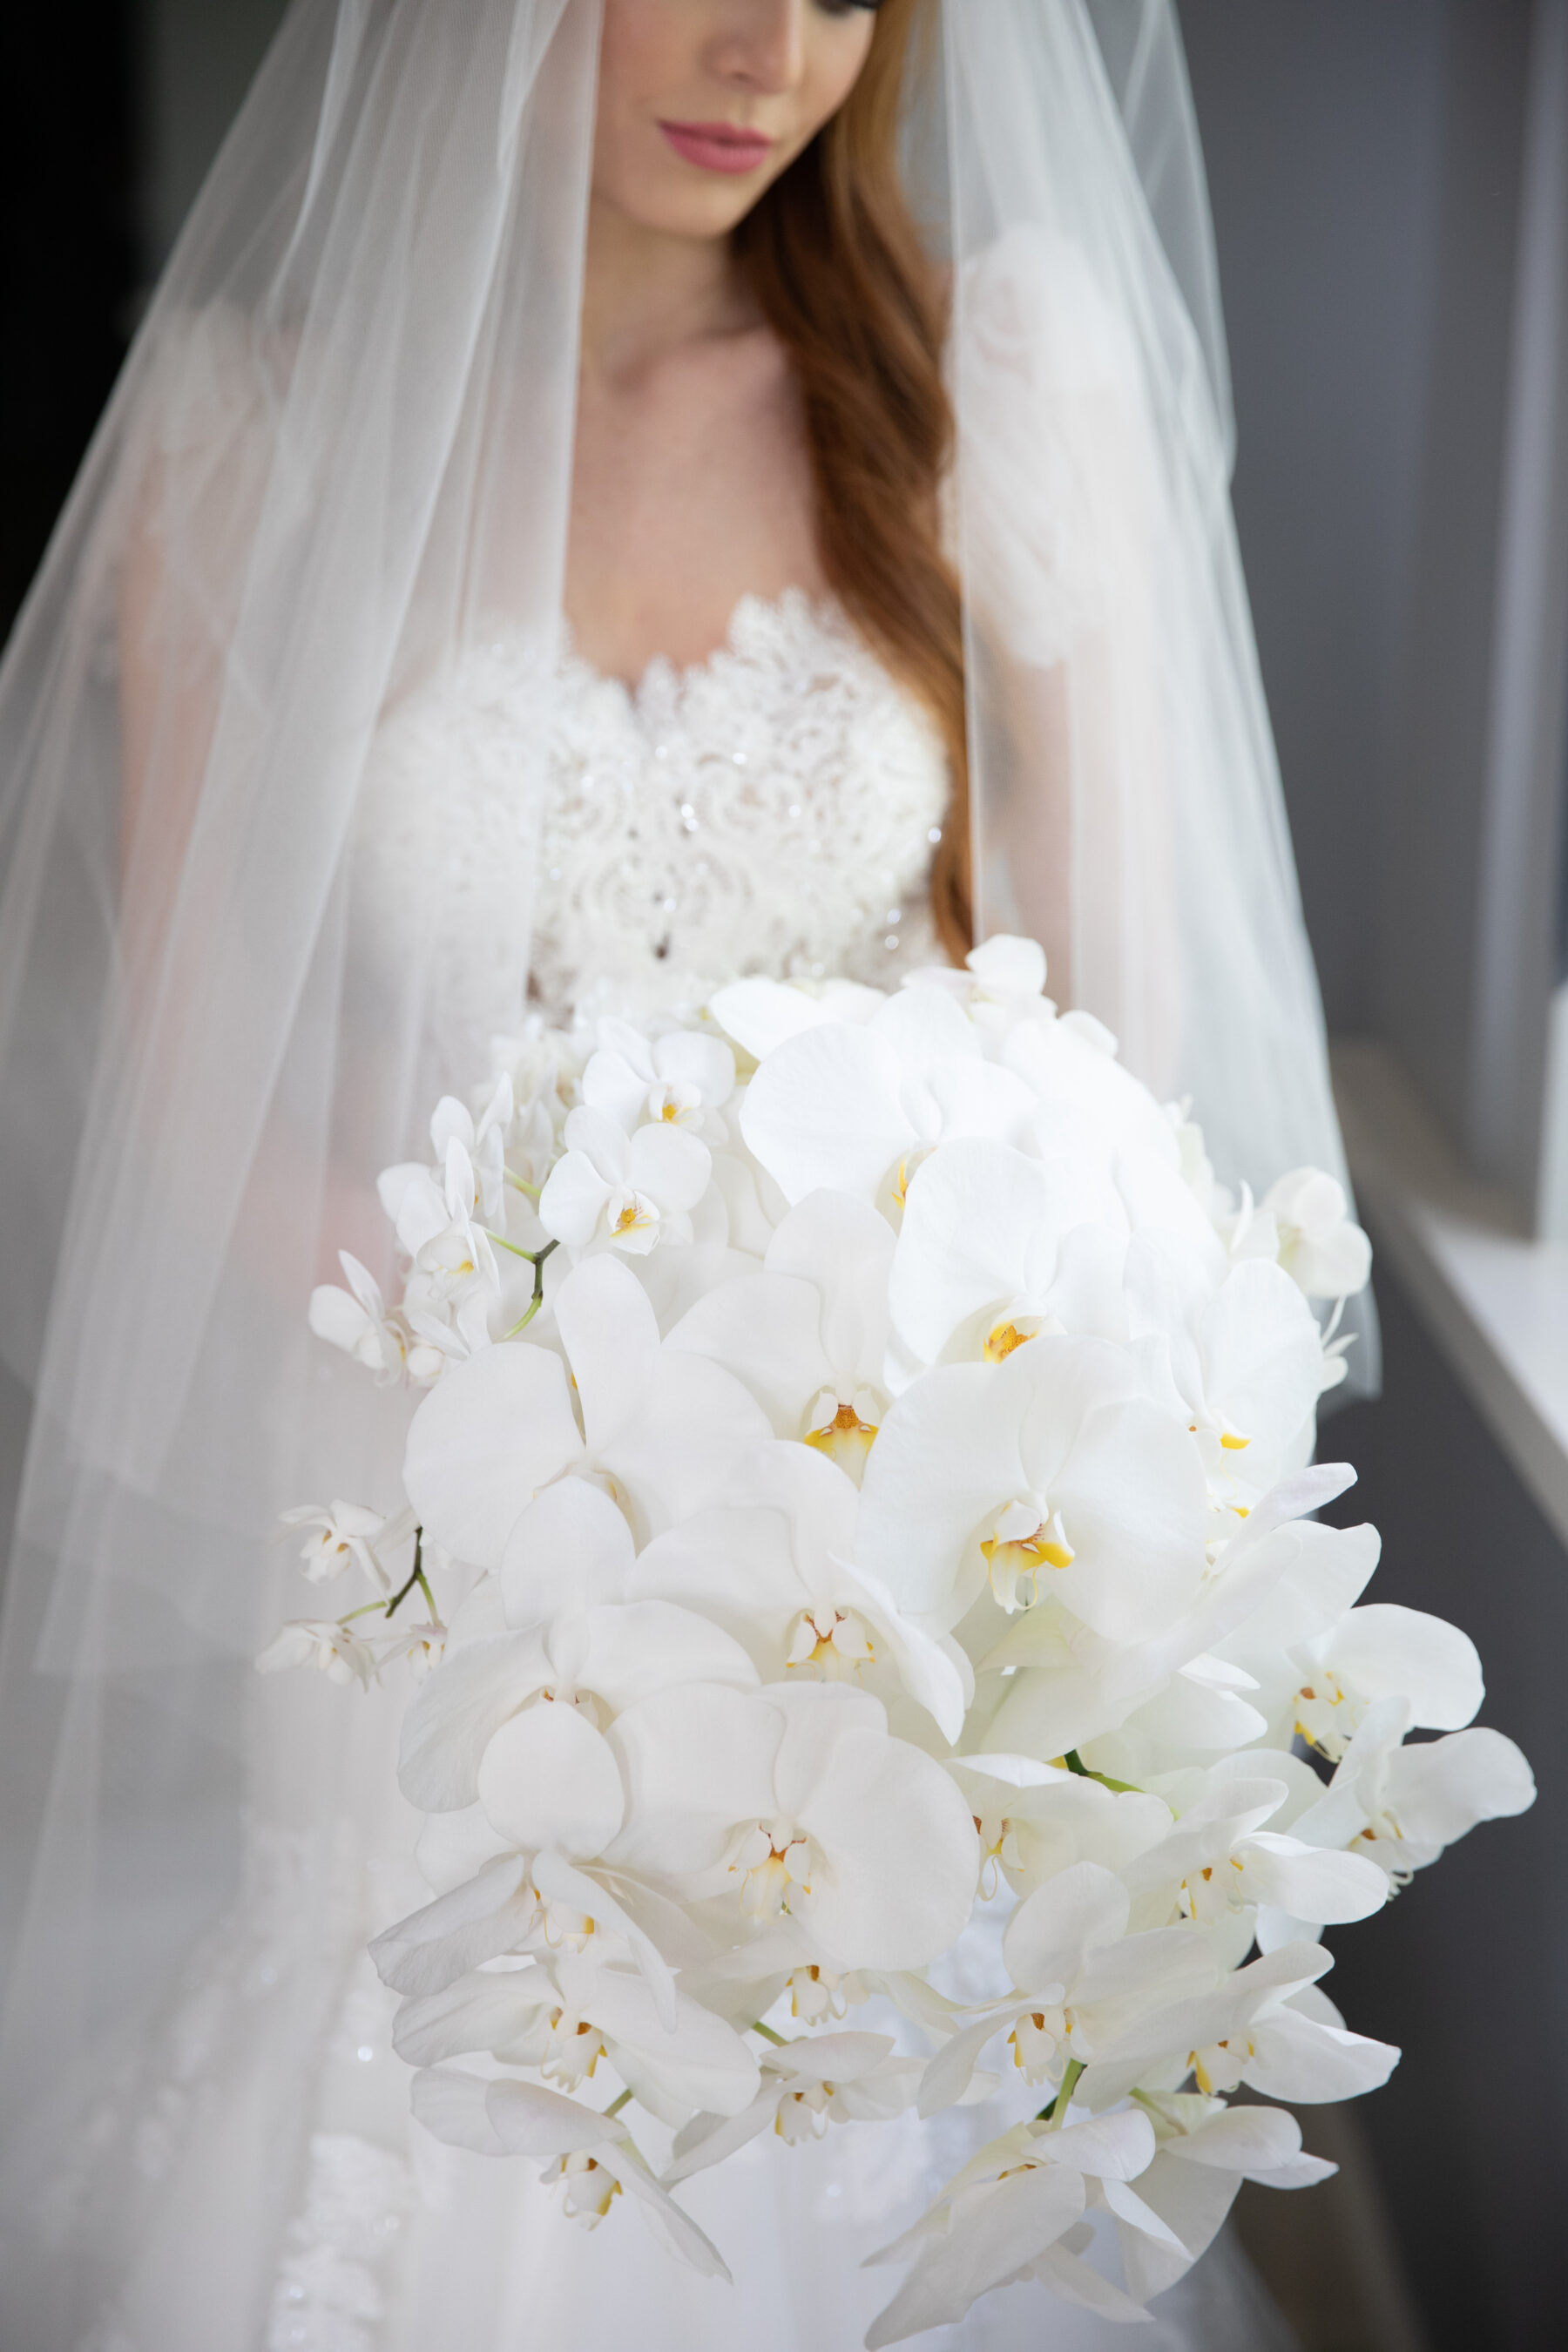 All white wedding bouquet: Floral Filled Luxurious Wedding by LMA Designs featured on Nashville Bride Guide